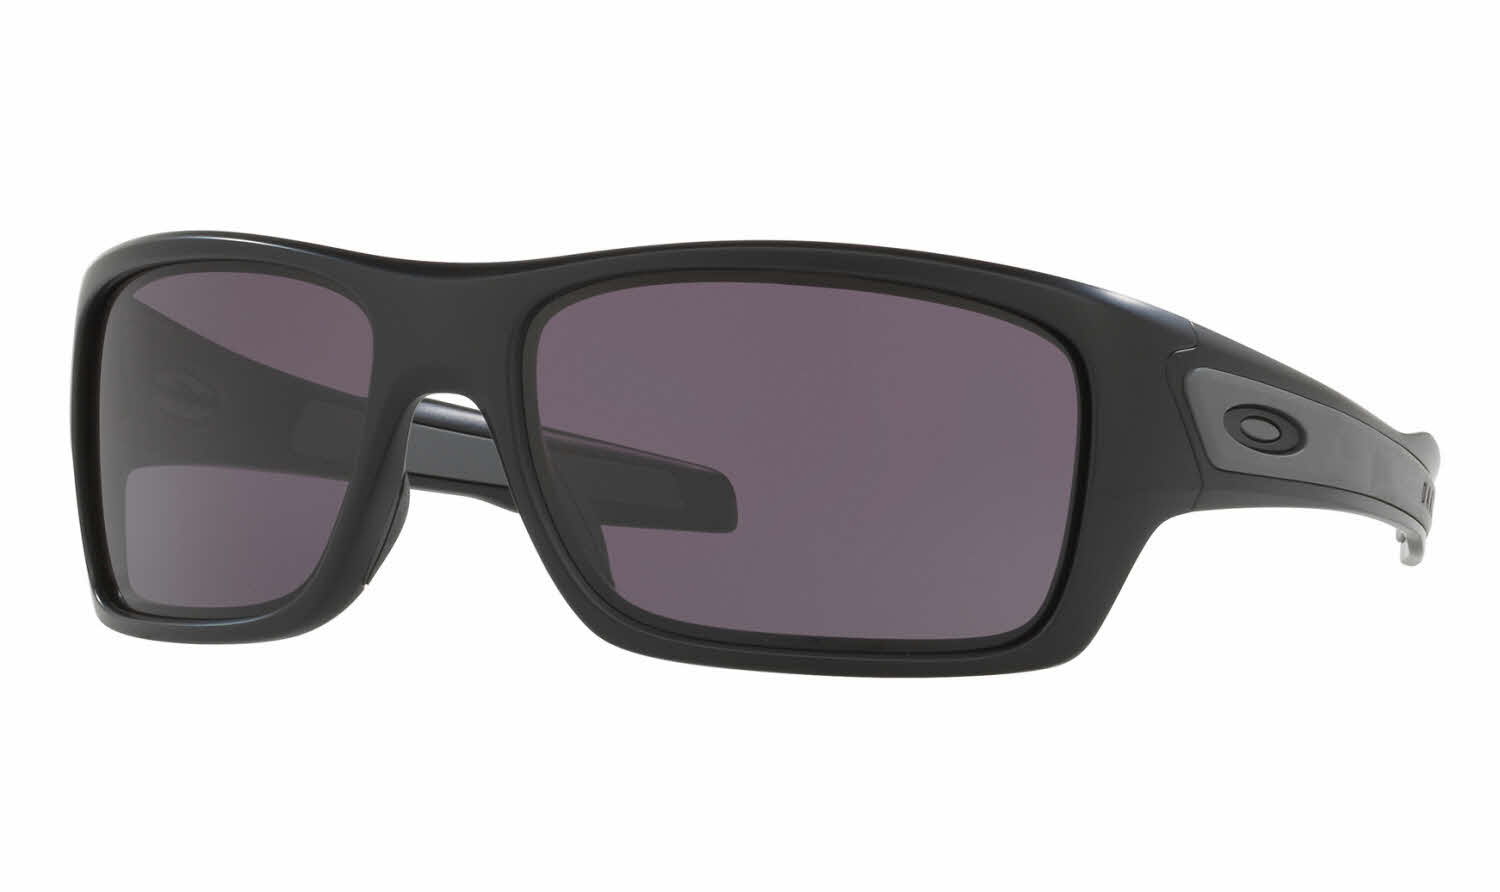 e0873de2b7 Oakley Turbine Sunglasses | Free Shipping